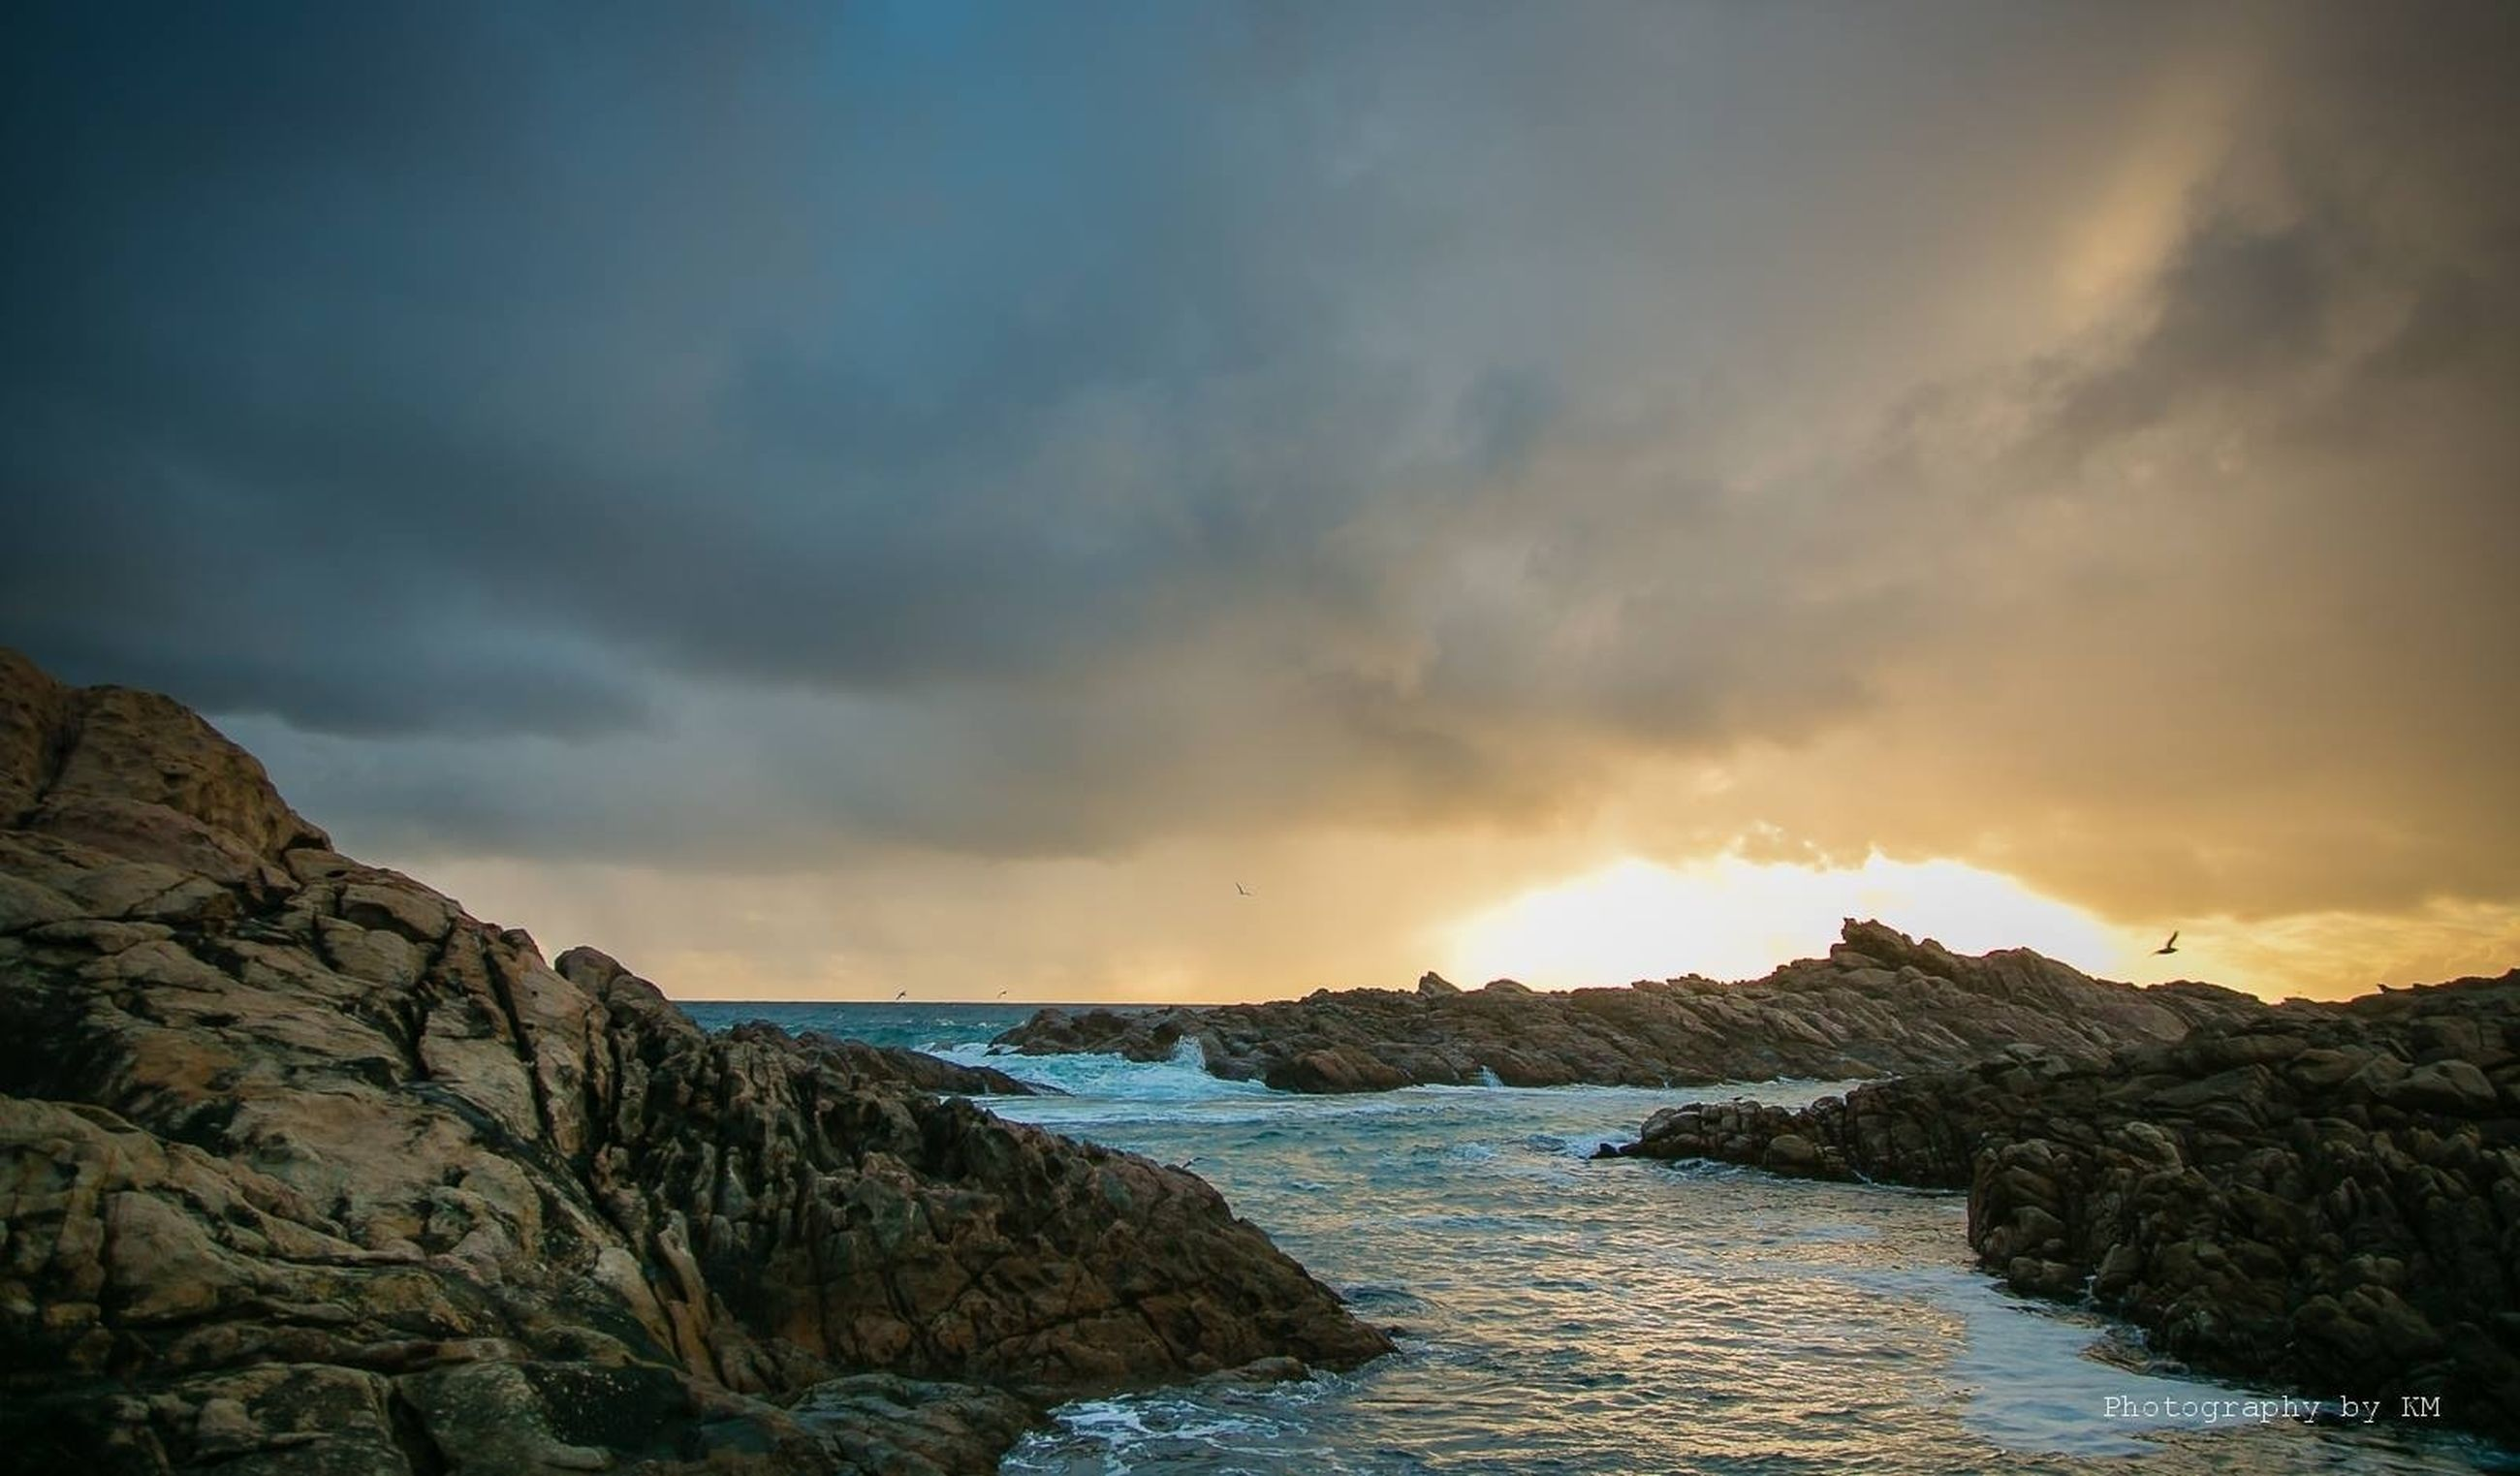 water, sea, scenics, sky, tranquil scene, beauty in nature, tranquility, sunset, rock - object, cloud - sky, nature, rock formation, horizon over water, idyllic, cloudy, cloud, rock, cliff, outdoors, waterfront